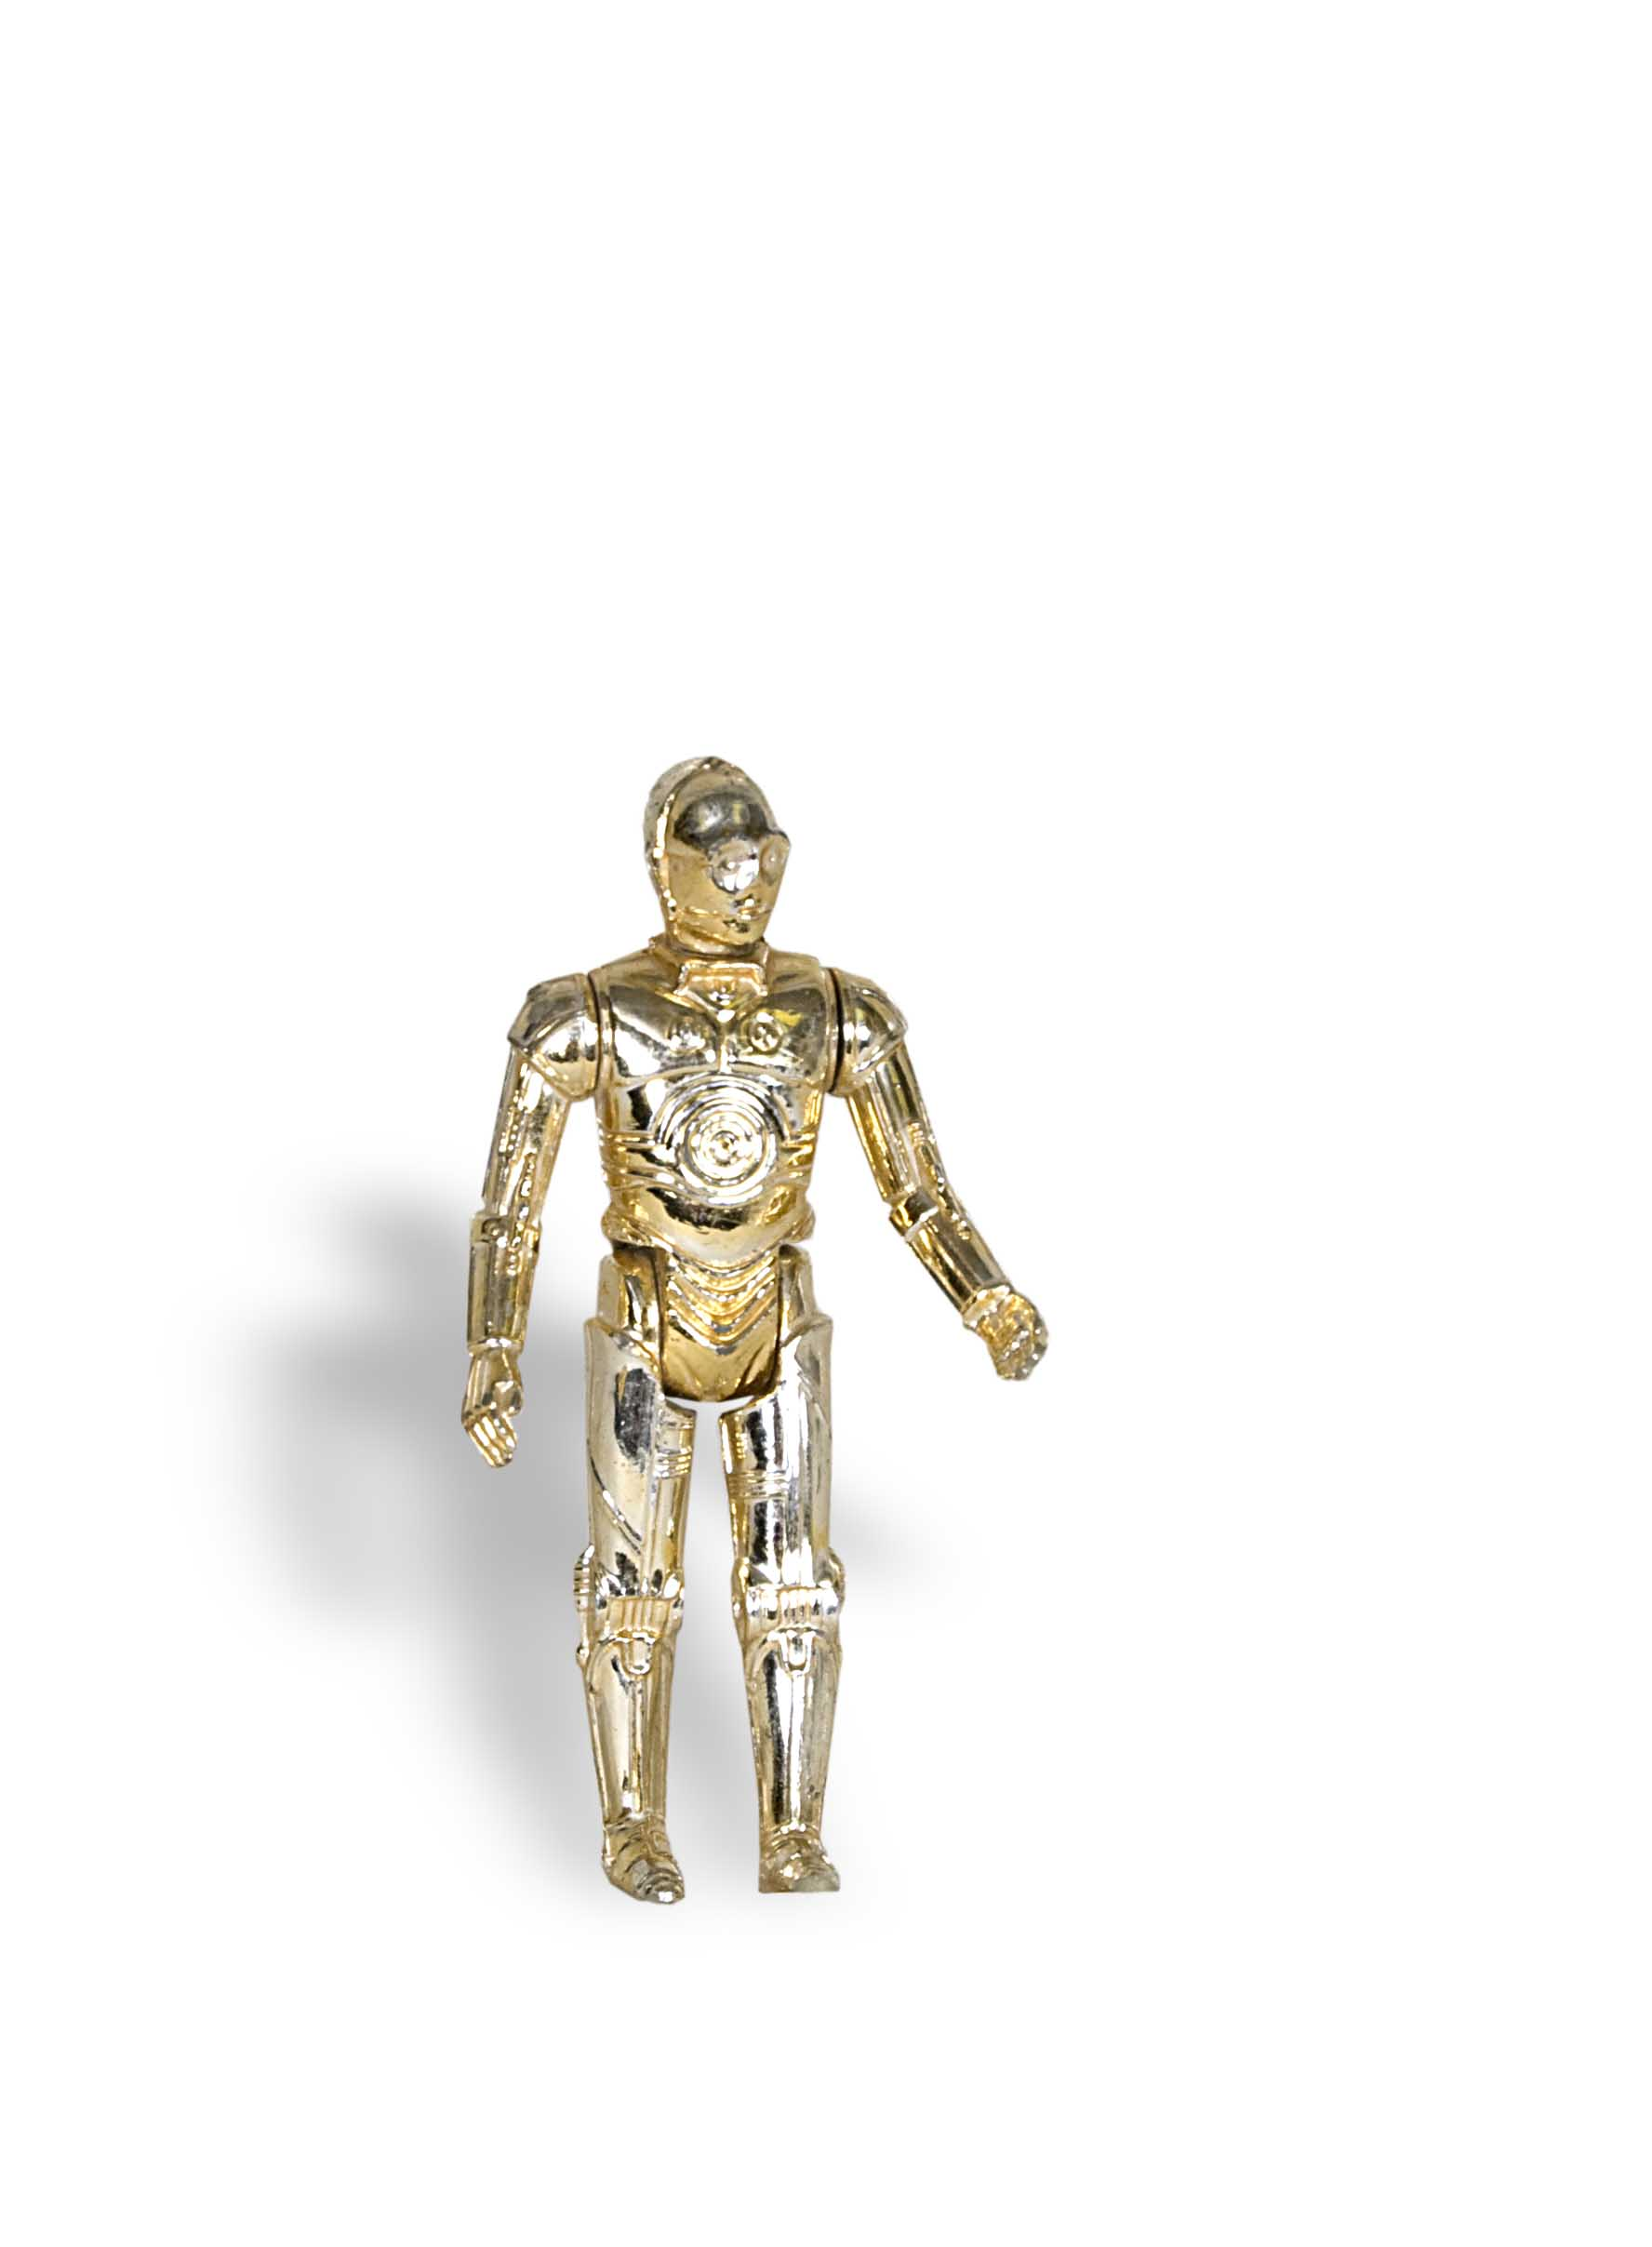 C-3PO, Star Wars toy